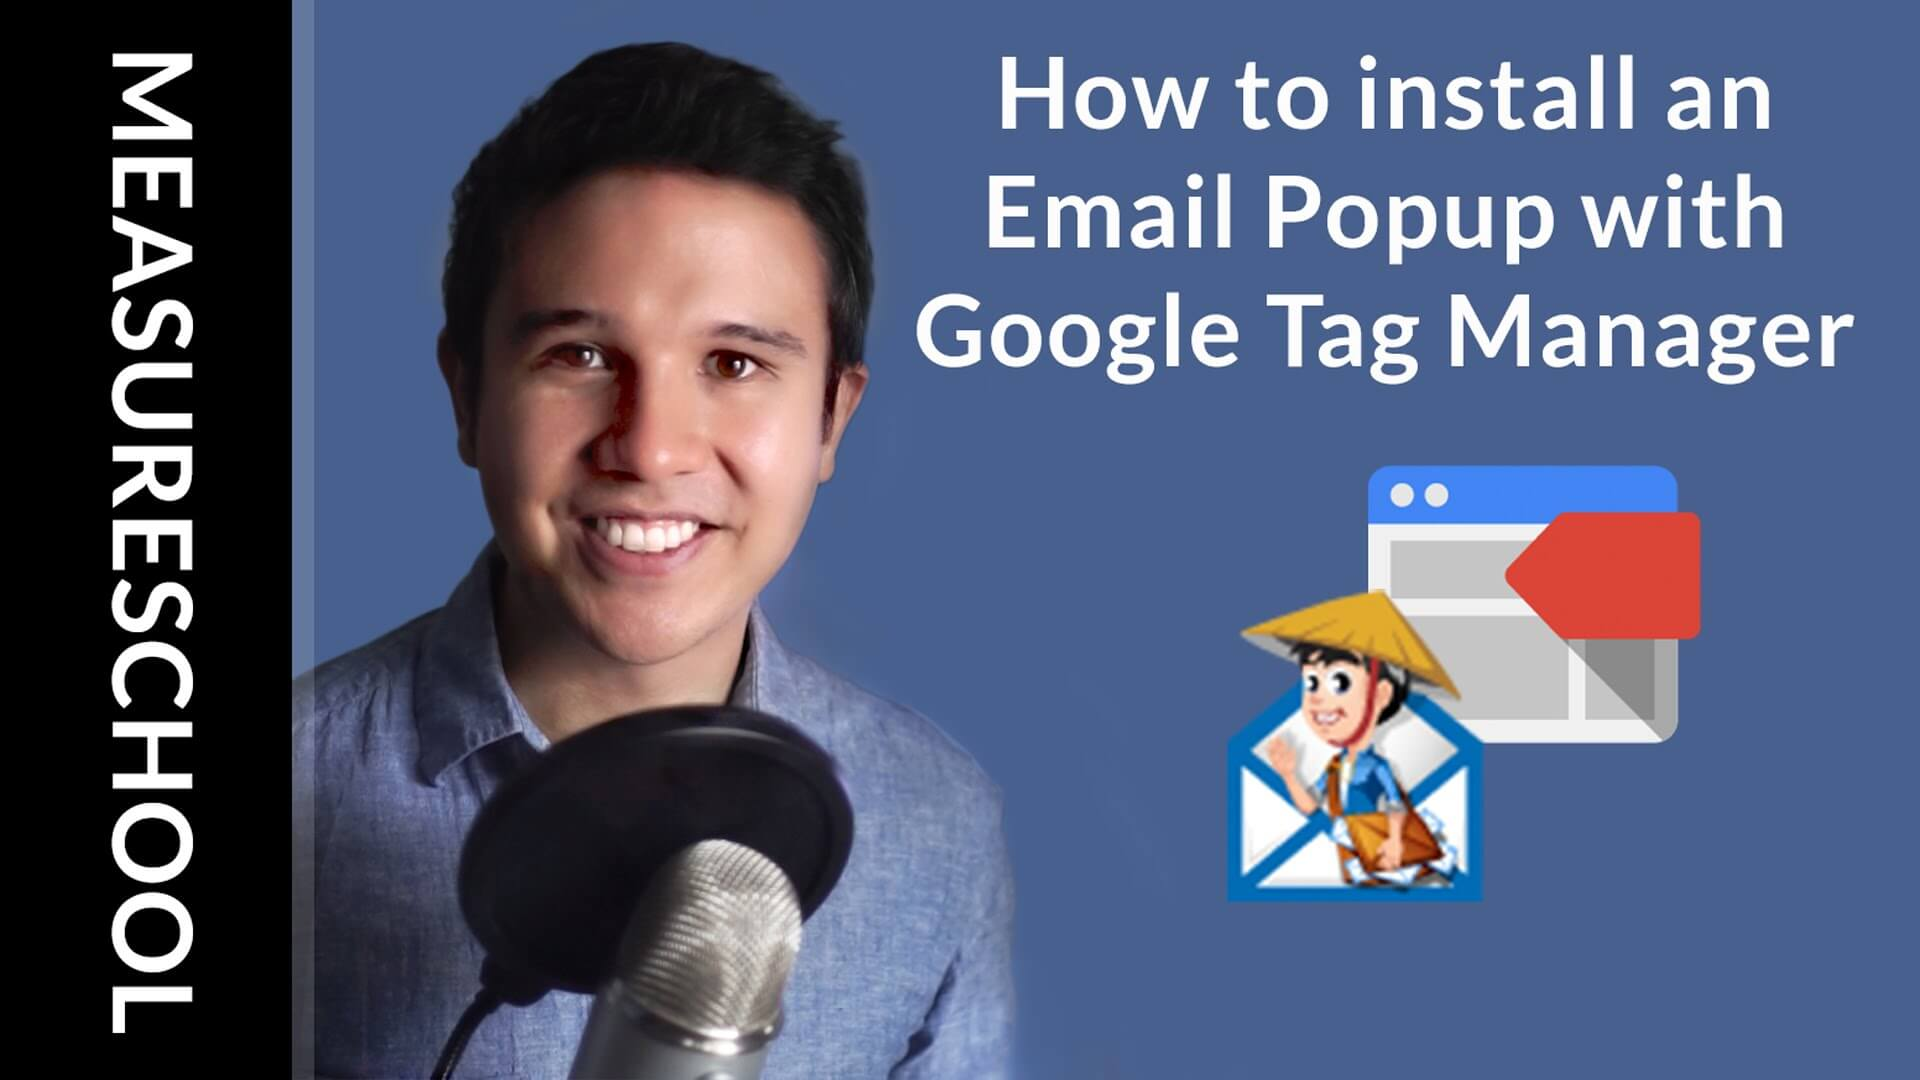 Implement an Email Popup with Google Tag Manager and Padiact